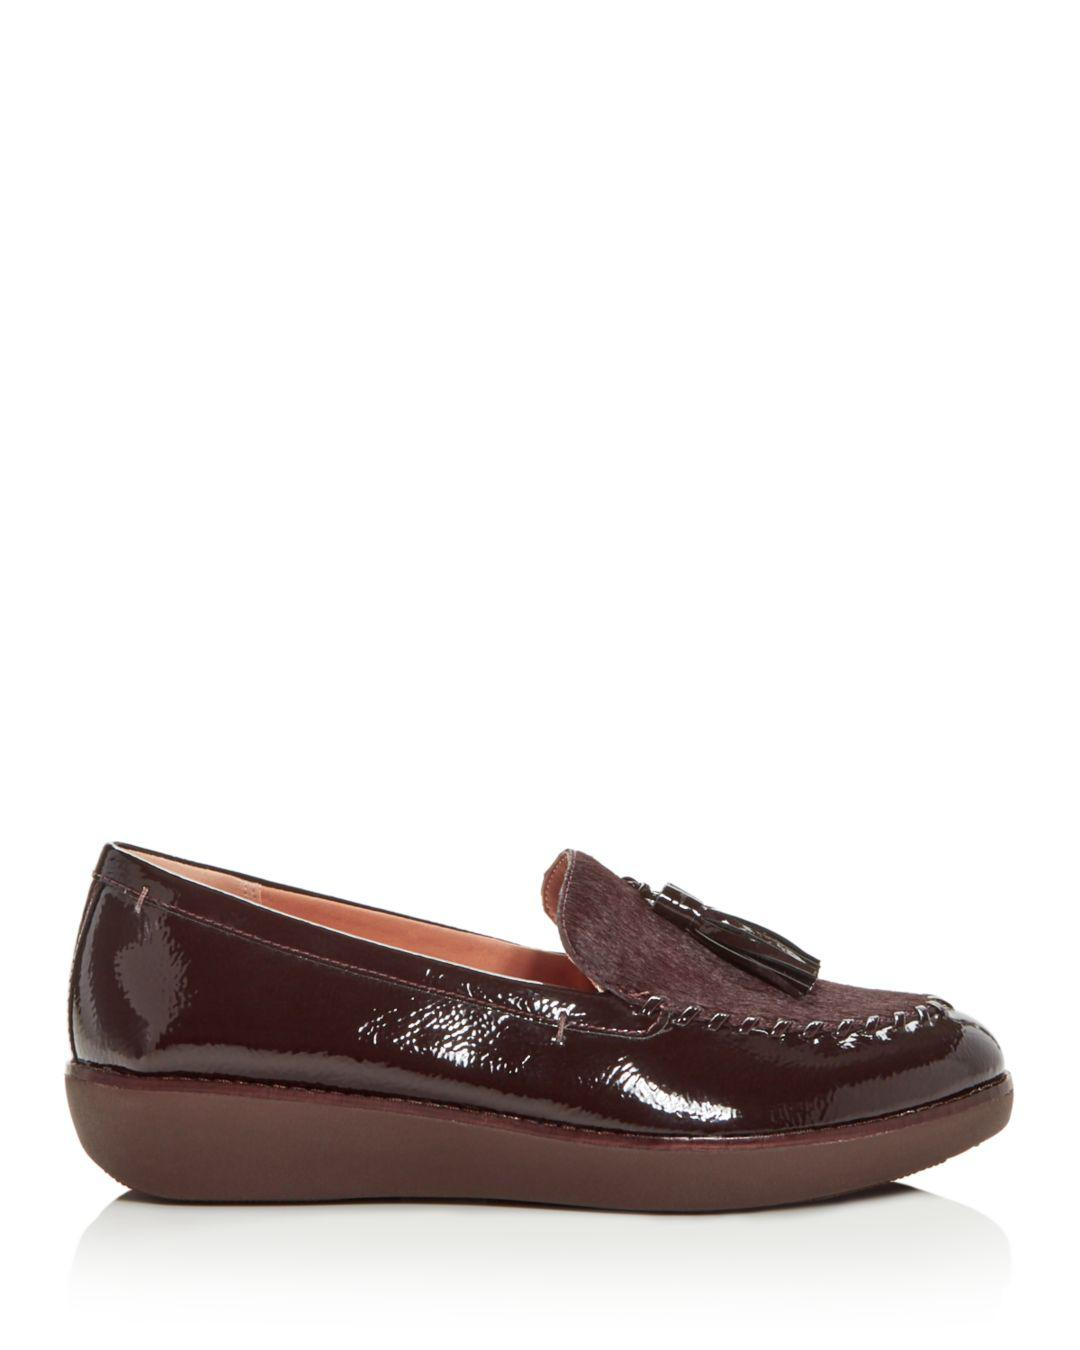 d3527917620 Lyst - Fitflop Women s Petrina Faux Calf Hair Moccasin Loafers